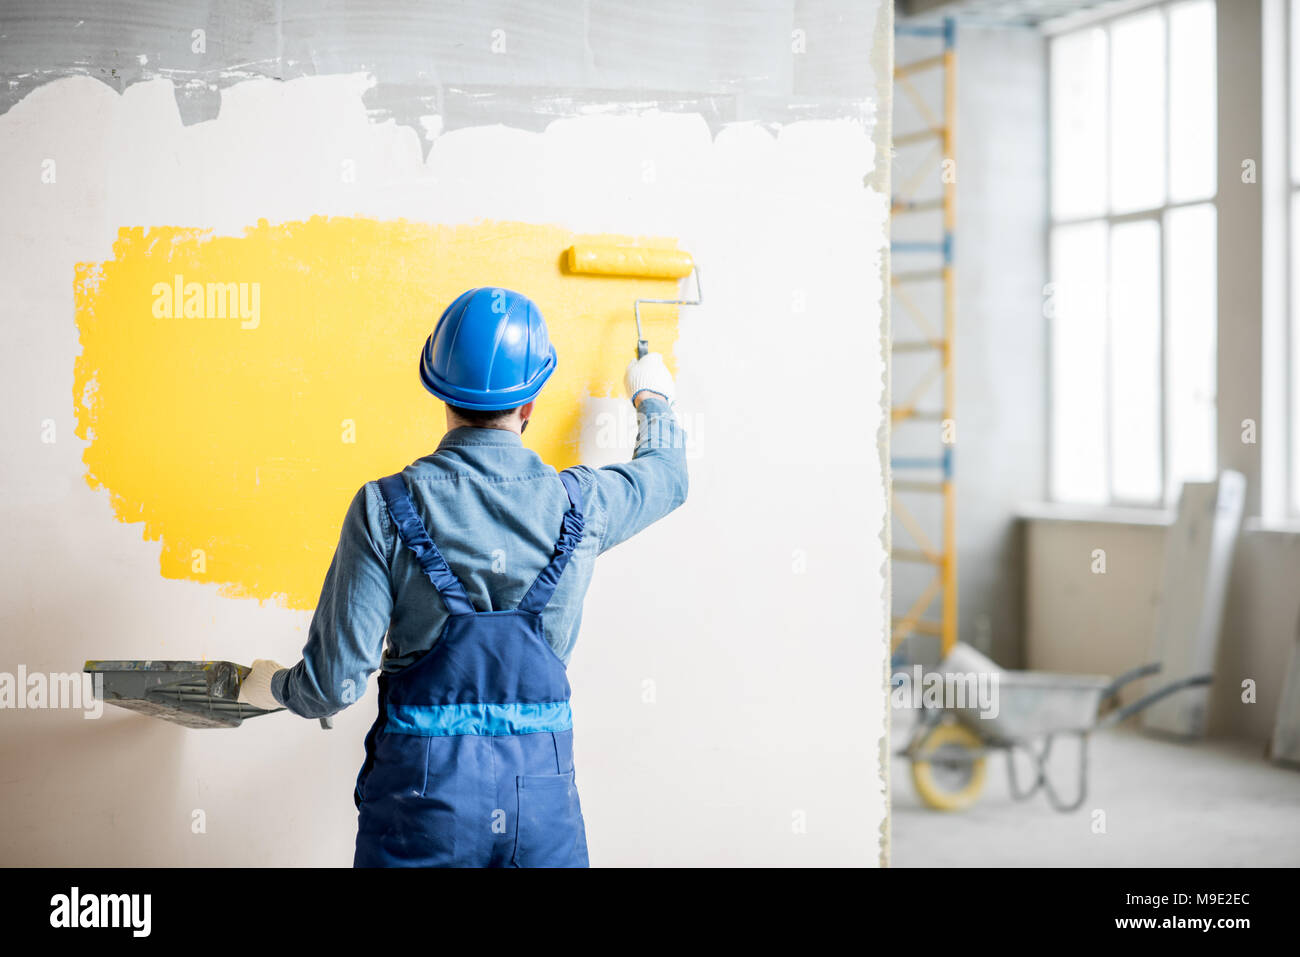 Workamn painting wall indoors - Stock Image